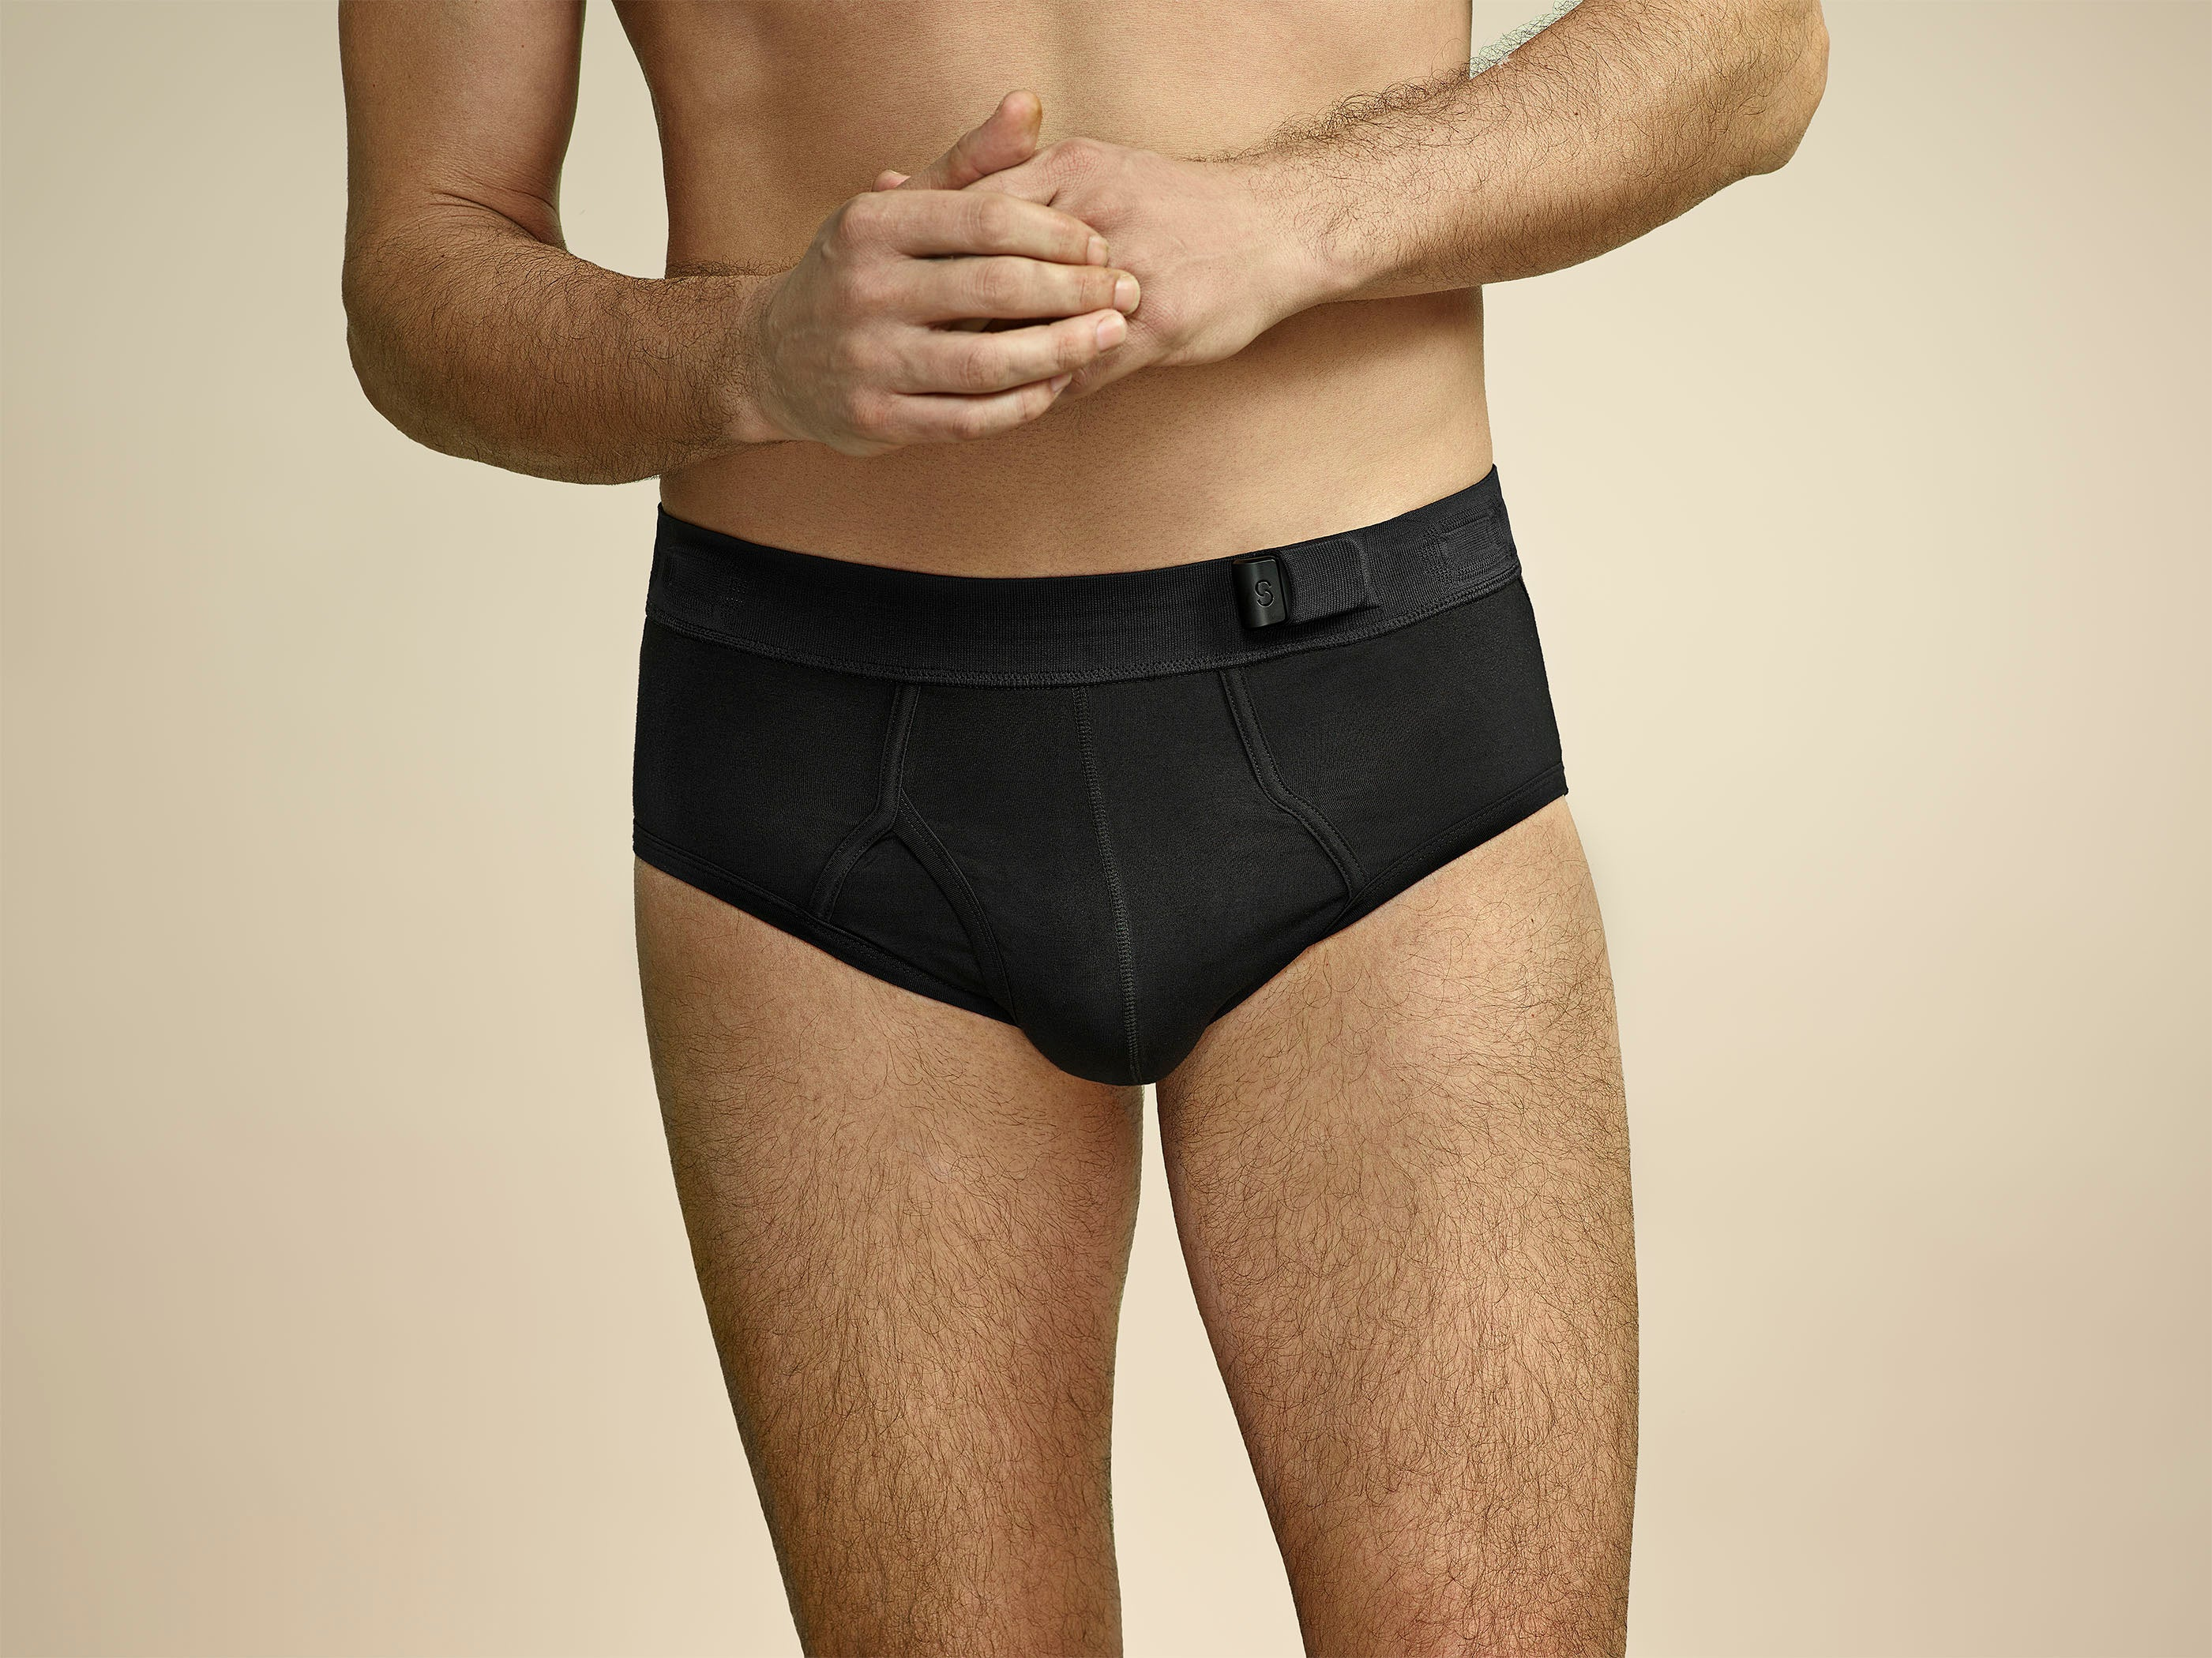 Men's Underwear Early Access Program